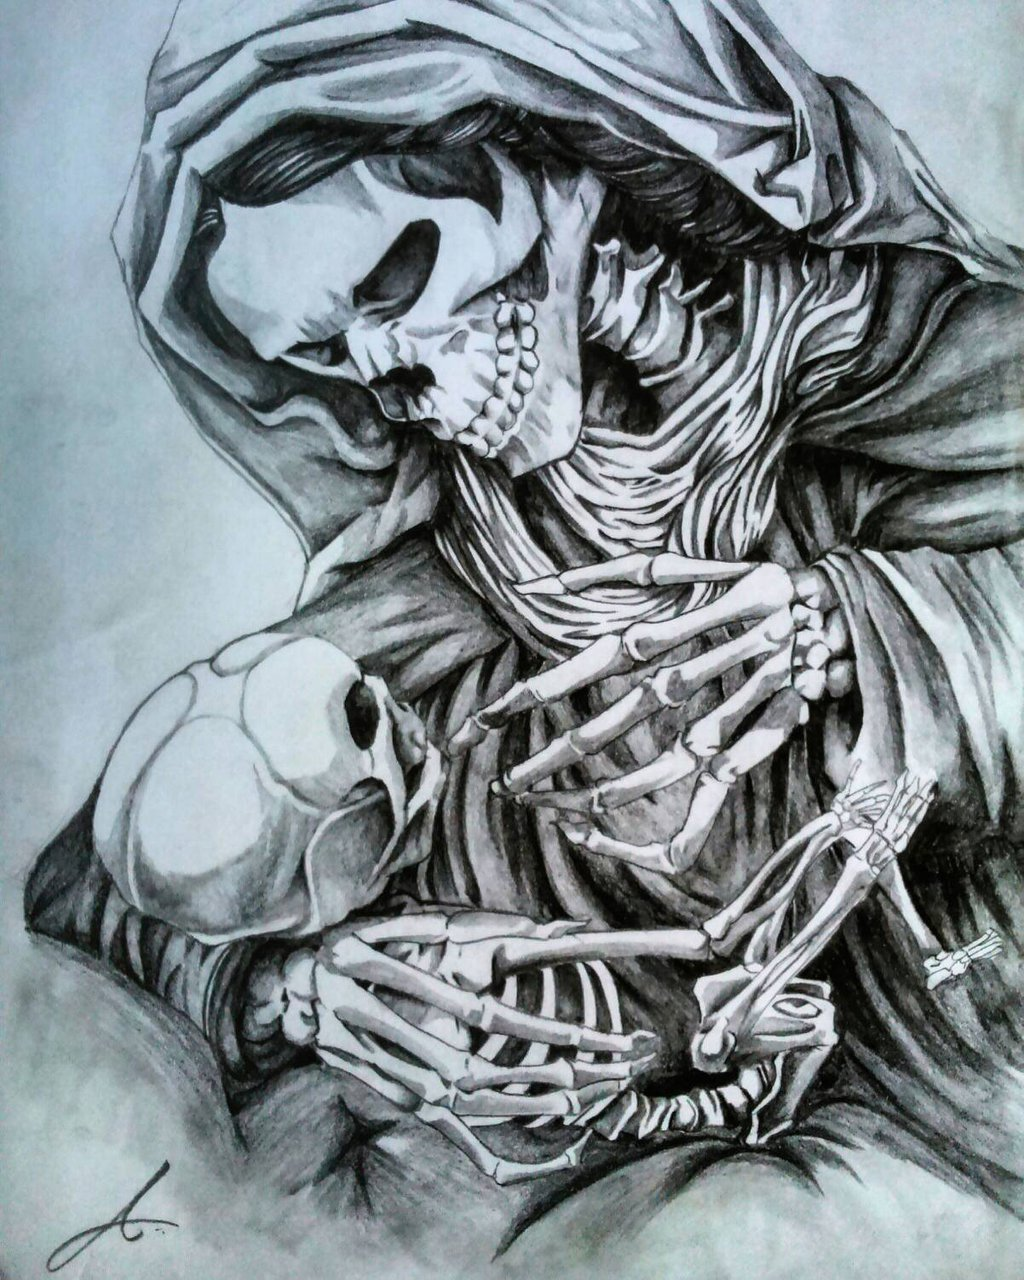 Sketch of a tattoo - A mother with a child in the form of skeletons